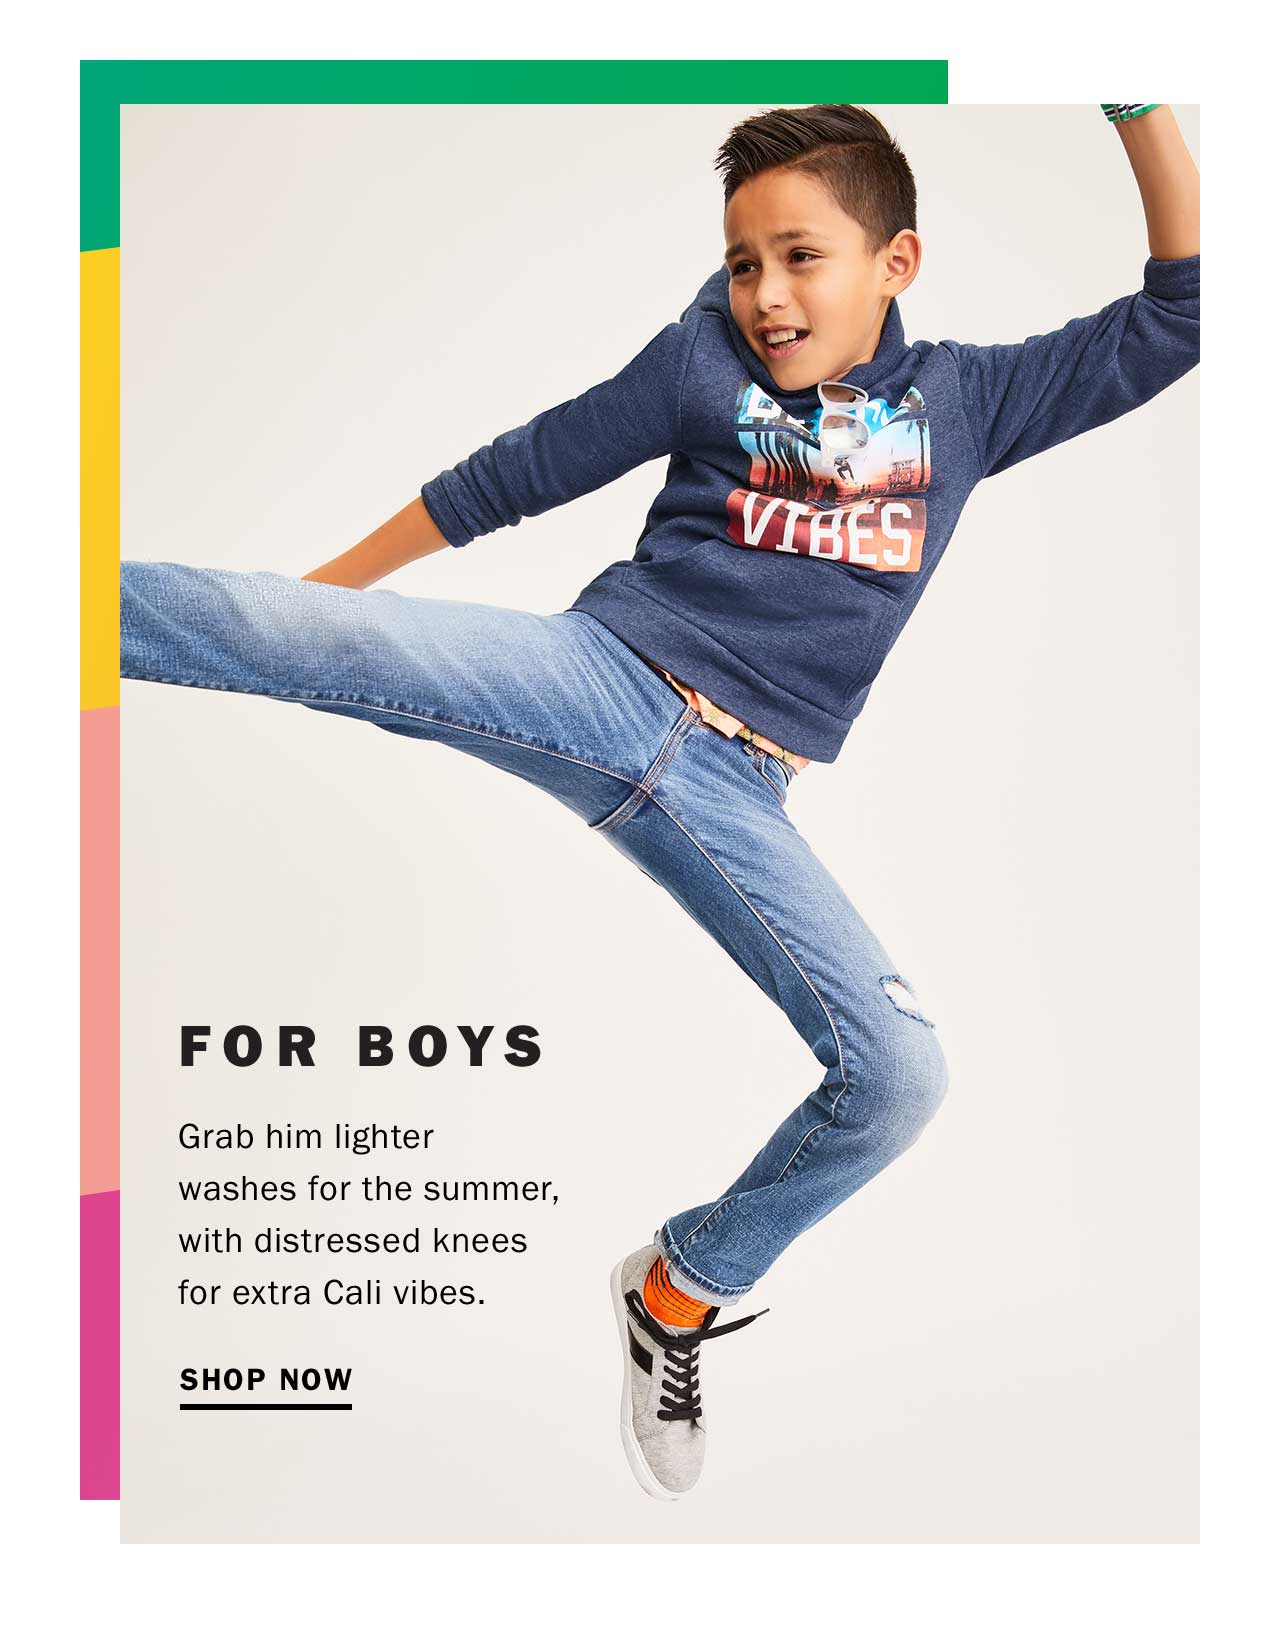 FOR BOYS | SHOP NOW